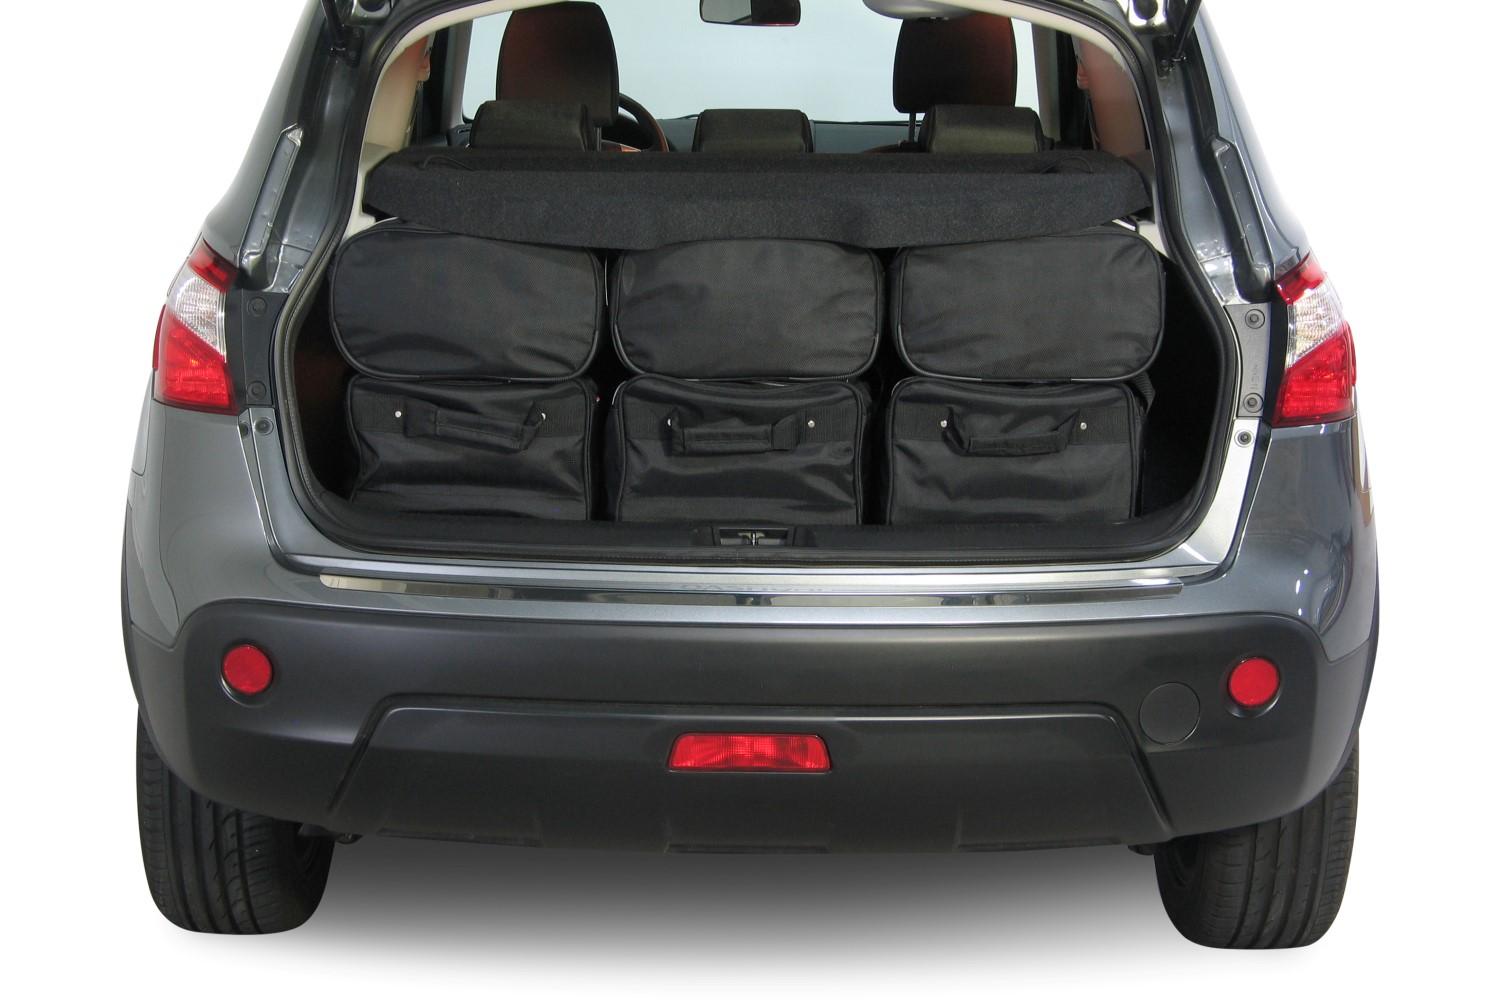 qashqai j10 2007 2013 nissan qashqai j10 2007 2013. Black Bedroom Furniture Sets. Home Design Ideas